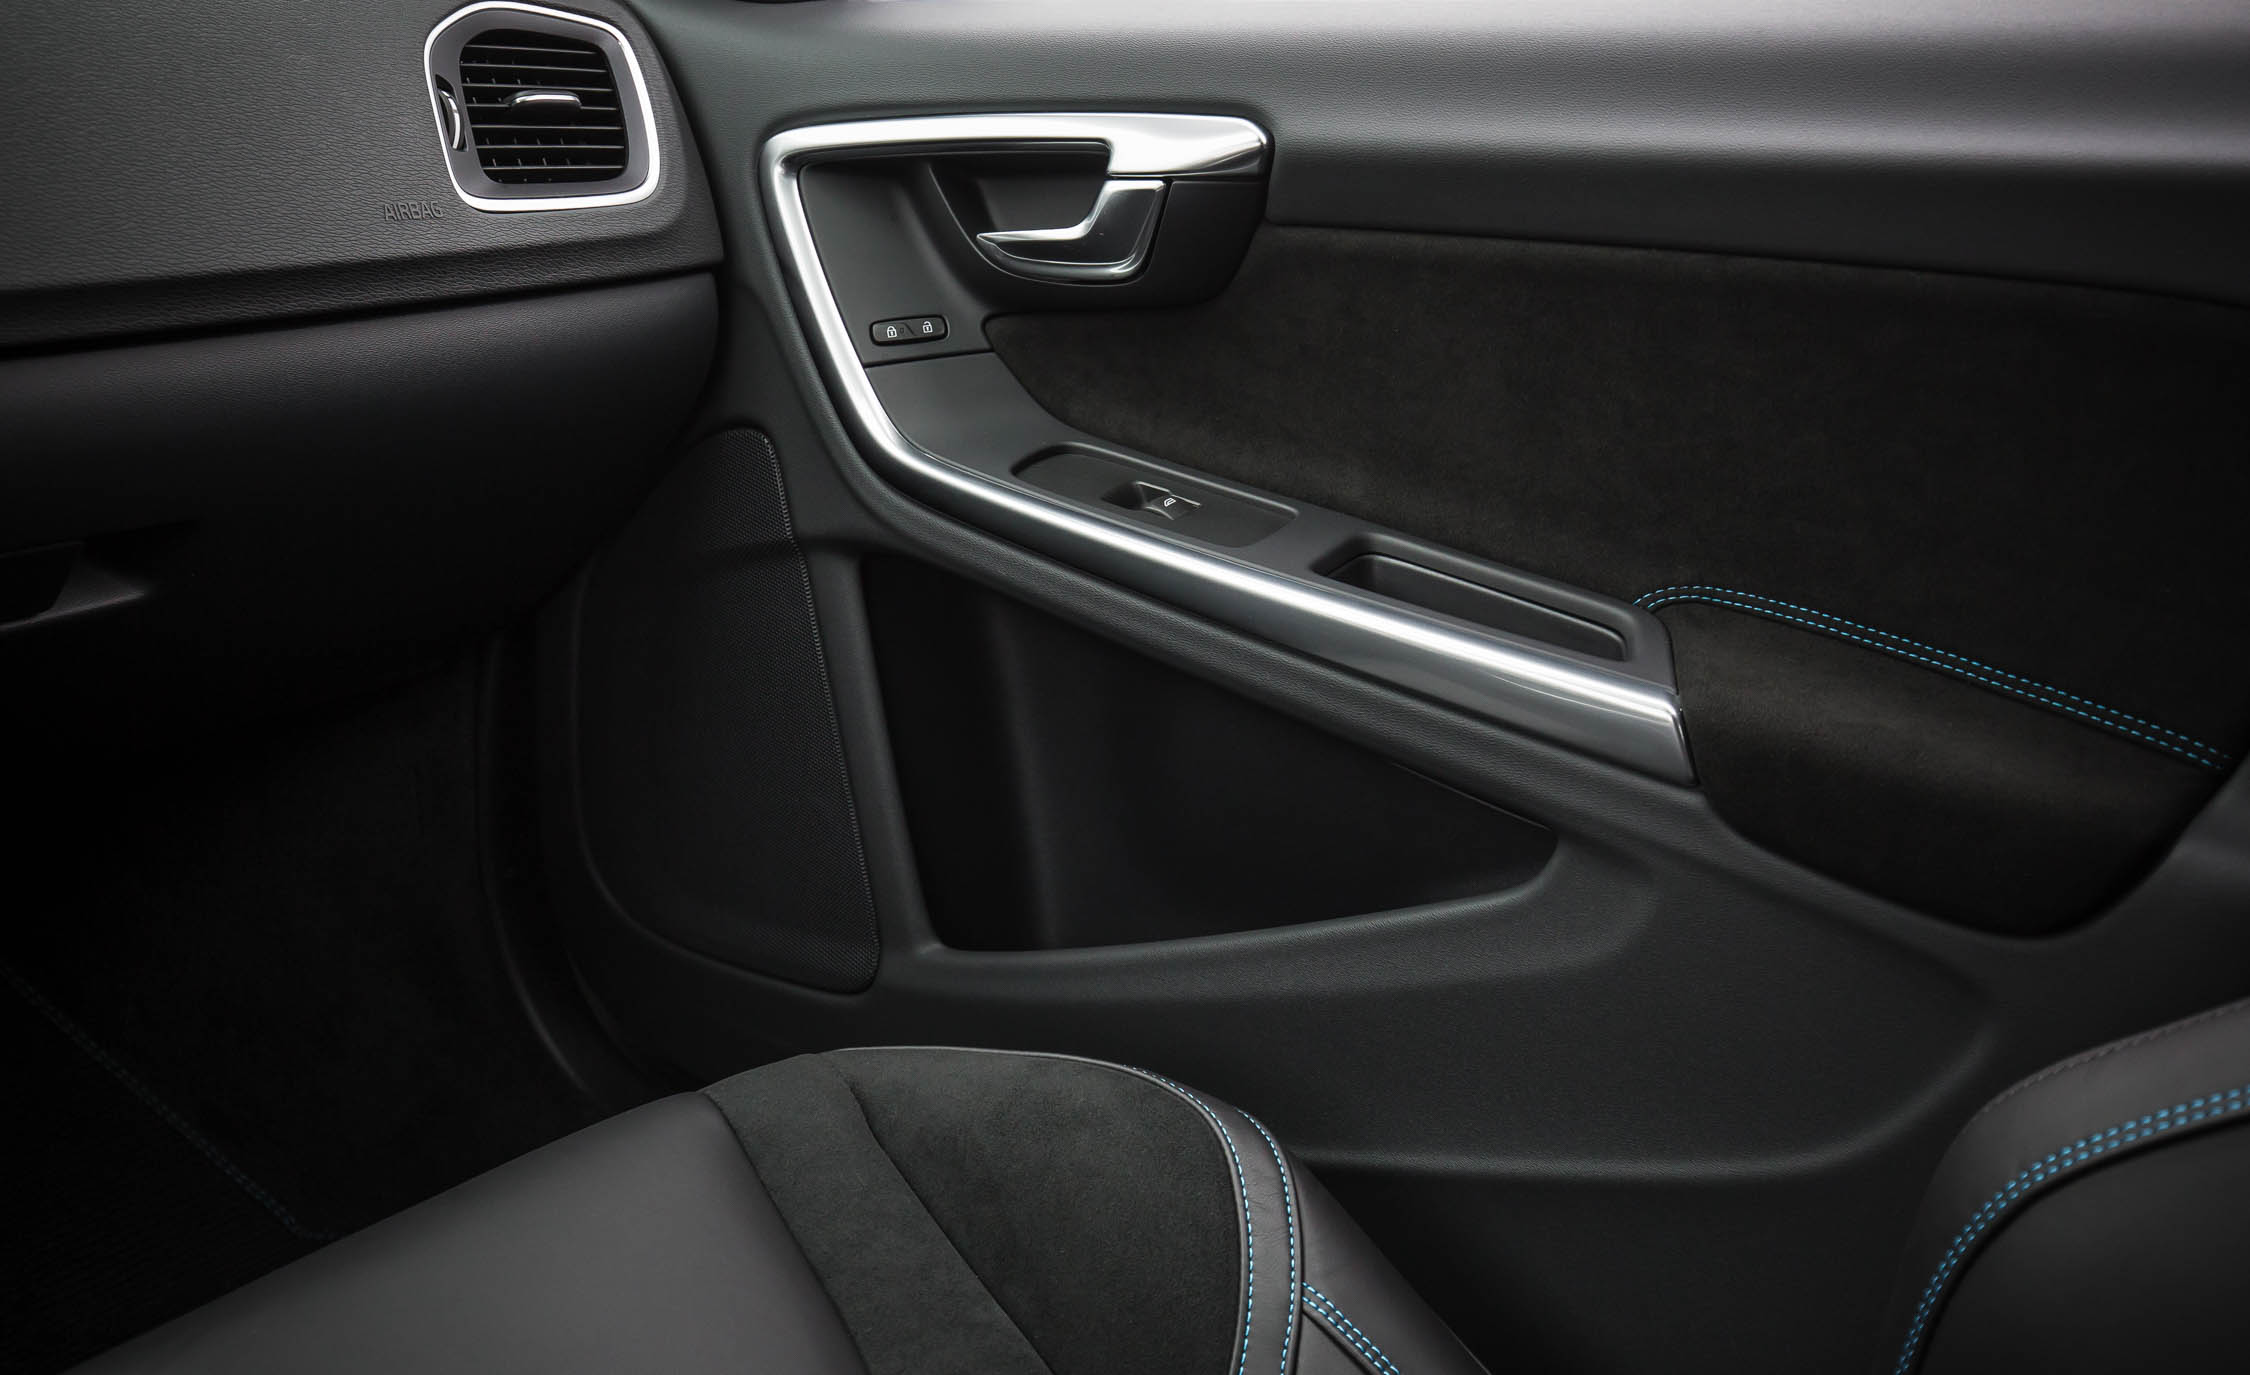 2017 Volvo V60 Polestar Interior View Door Trim Front (Photo 35 of 53)